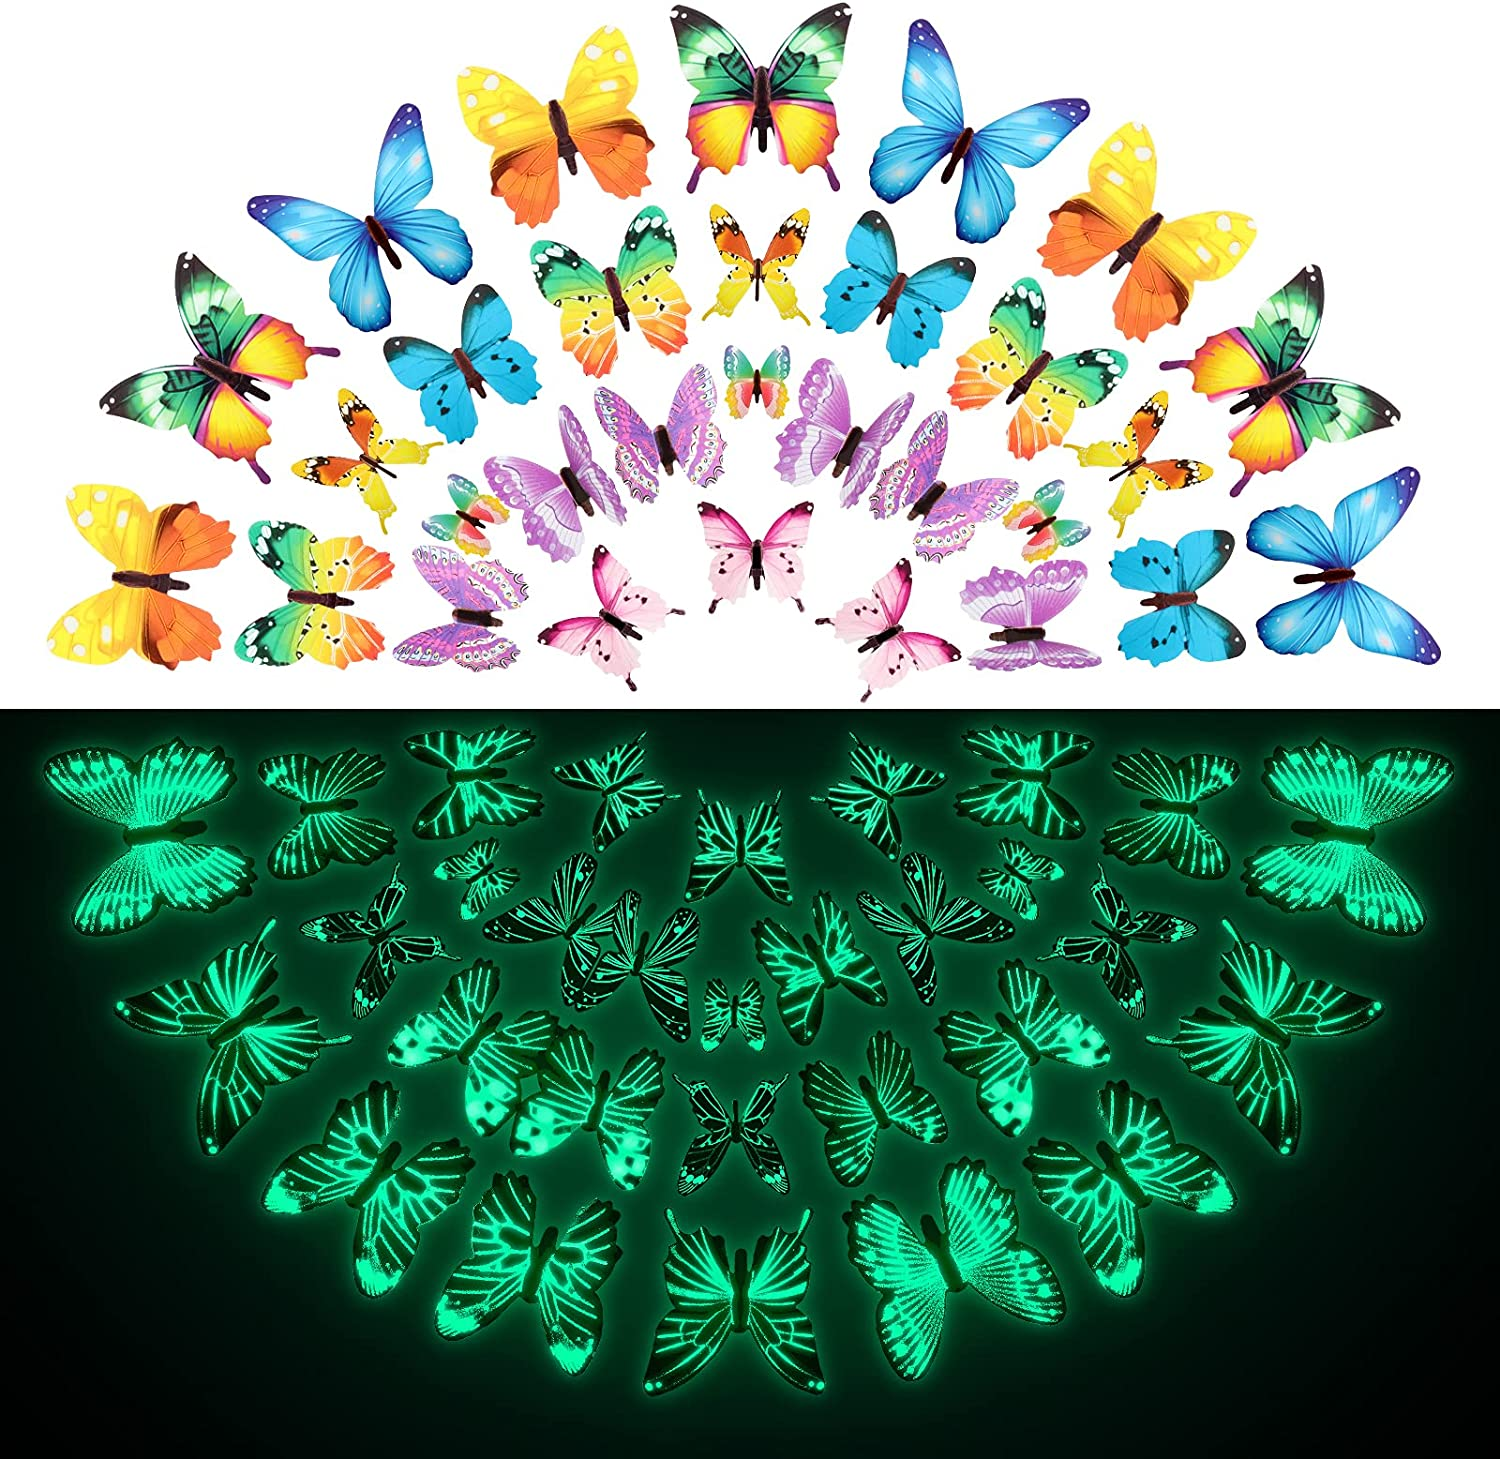 96 Pieces Butterfly Wall Decals Glow in The Dark Butterflies Decor for Ceiling Adhesive Removable 3D Luminous Mural Stickers for Kid Bedroom Nursery Living Room Home Garden Decoration, Multi Colors